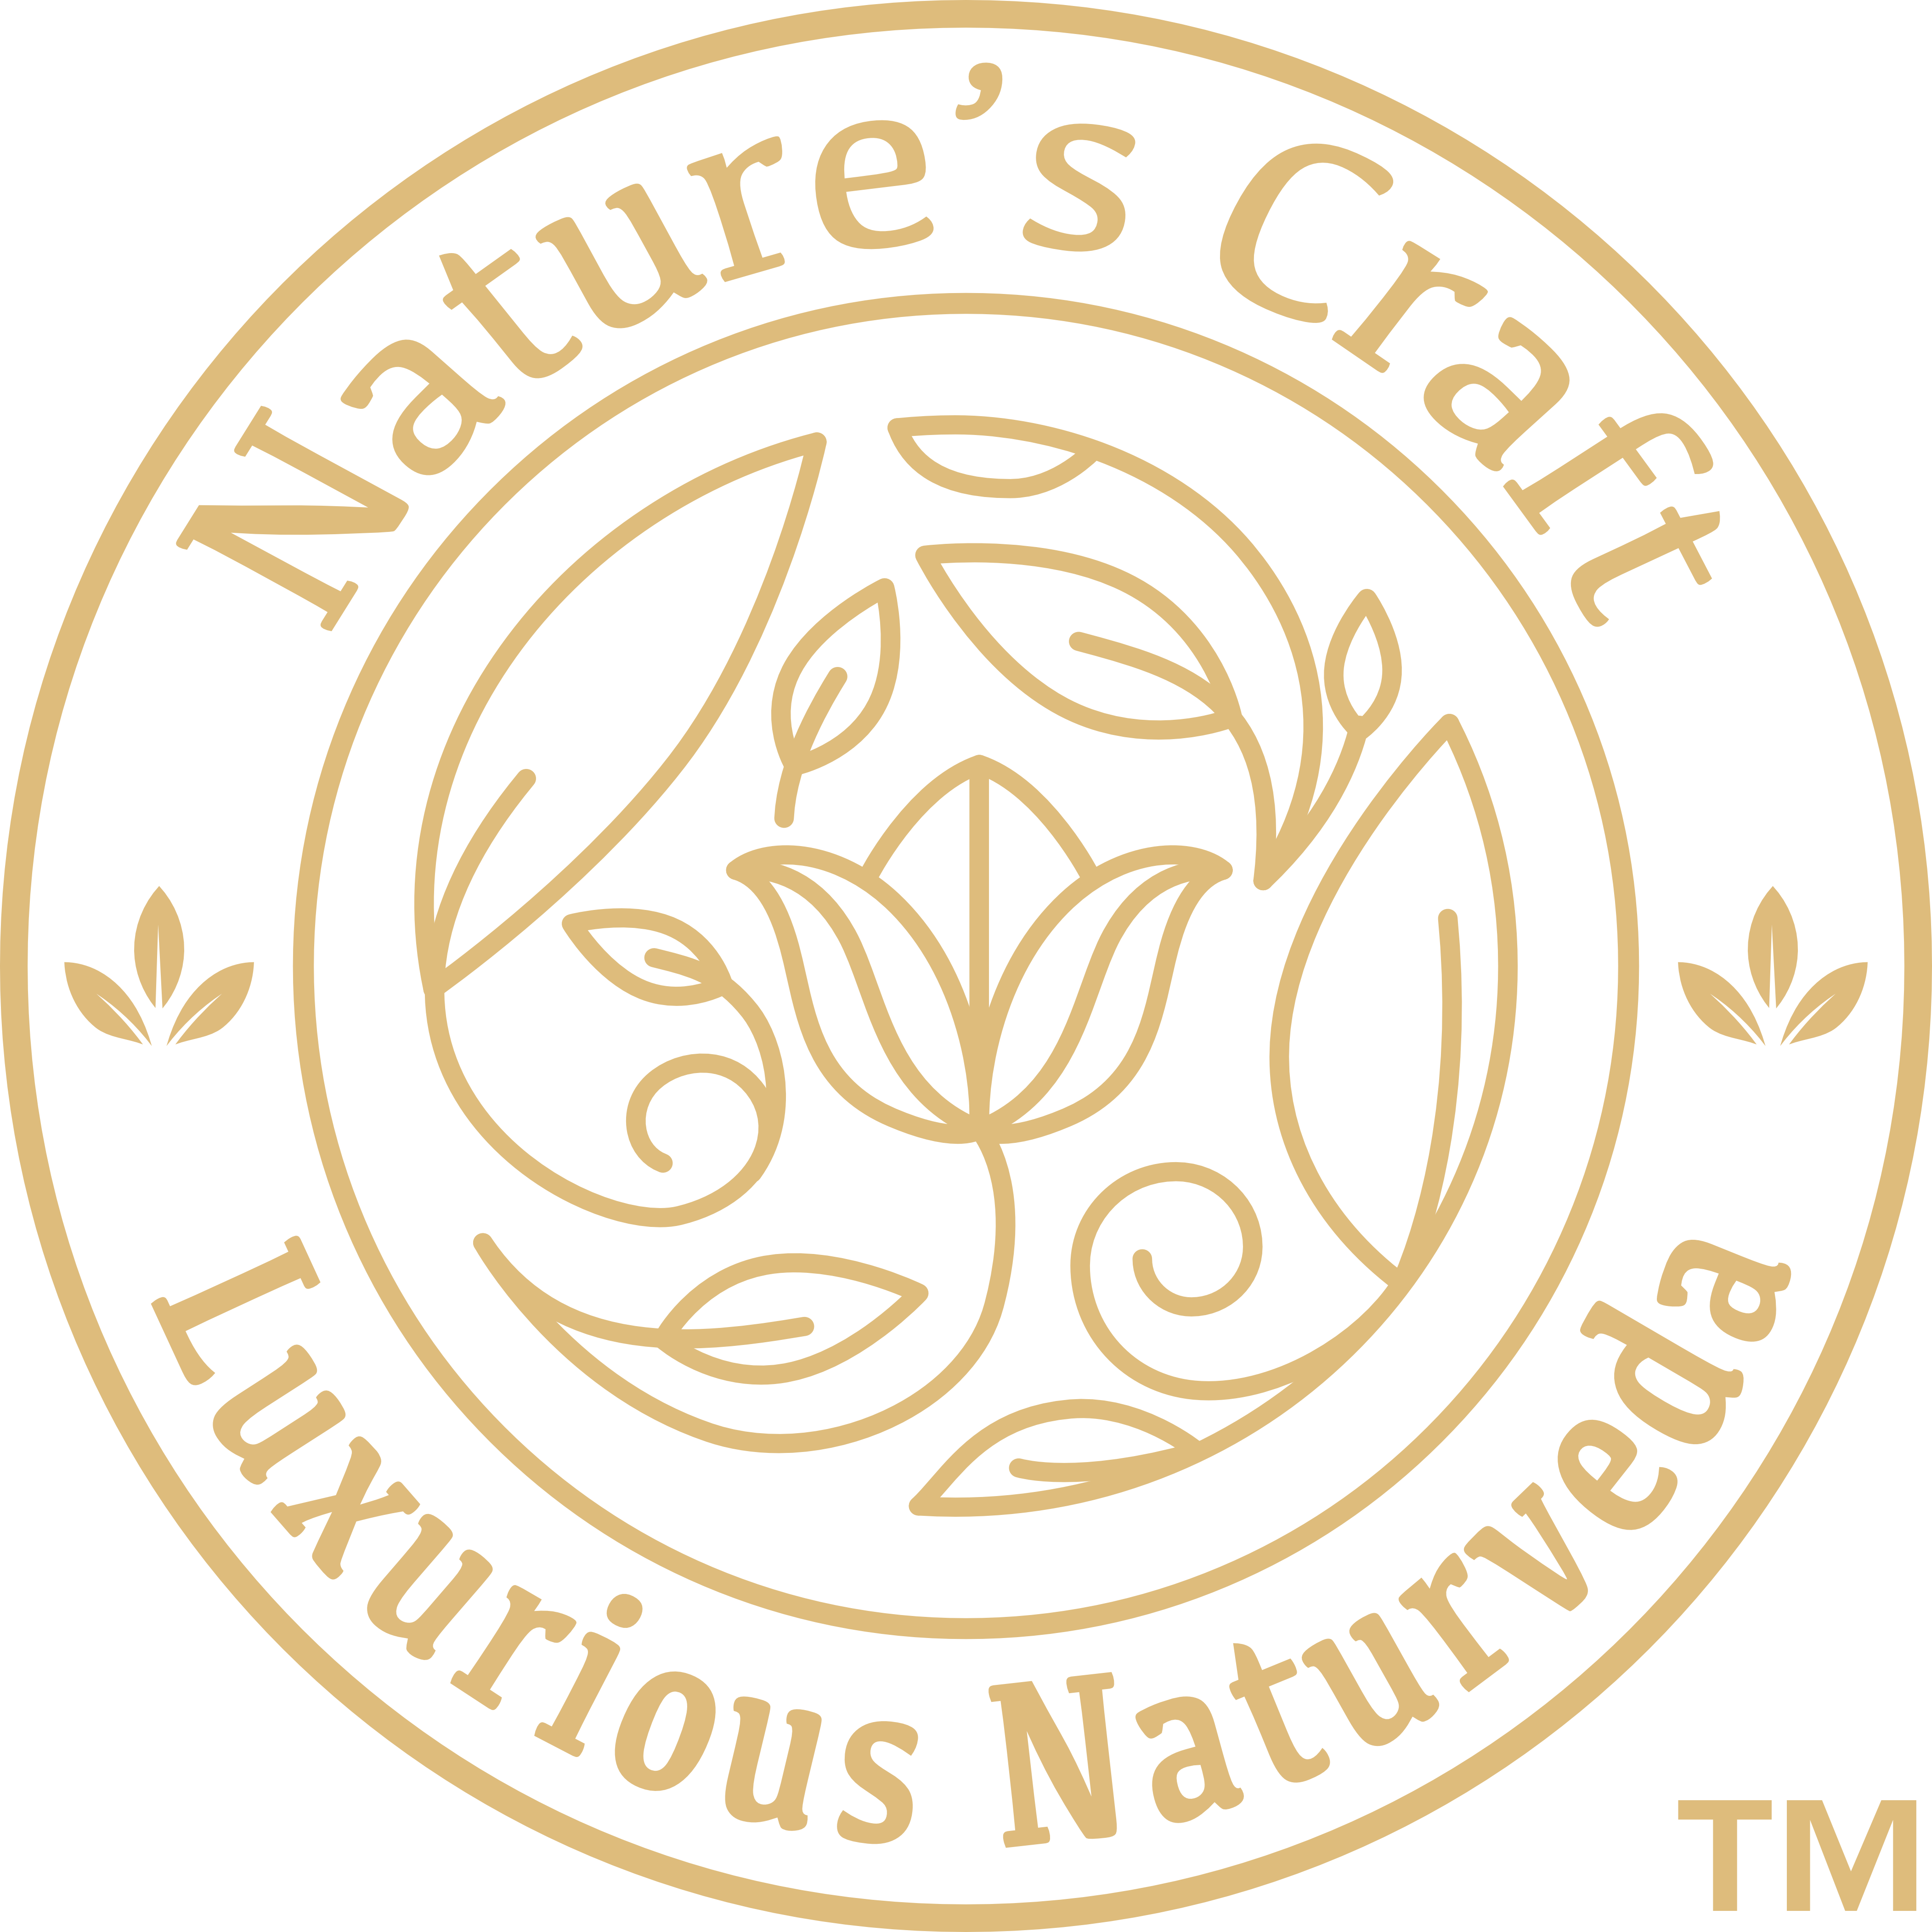 The Natures Craft